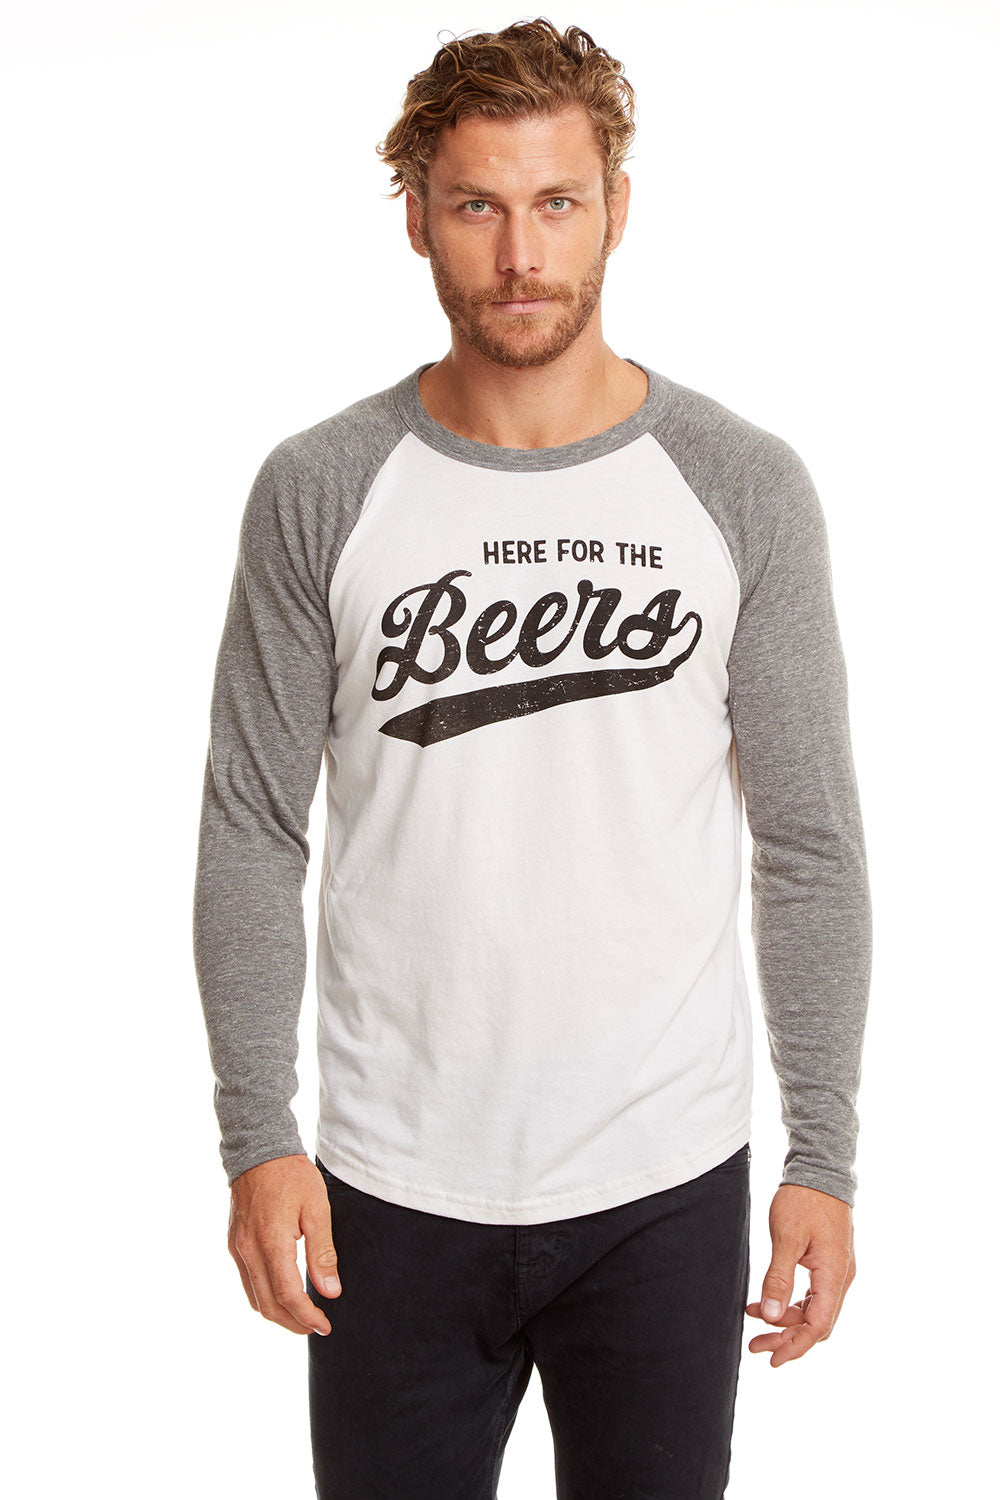 Here For Beer MENS chaserbrand4.myshopify.com